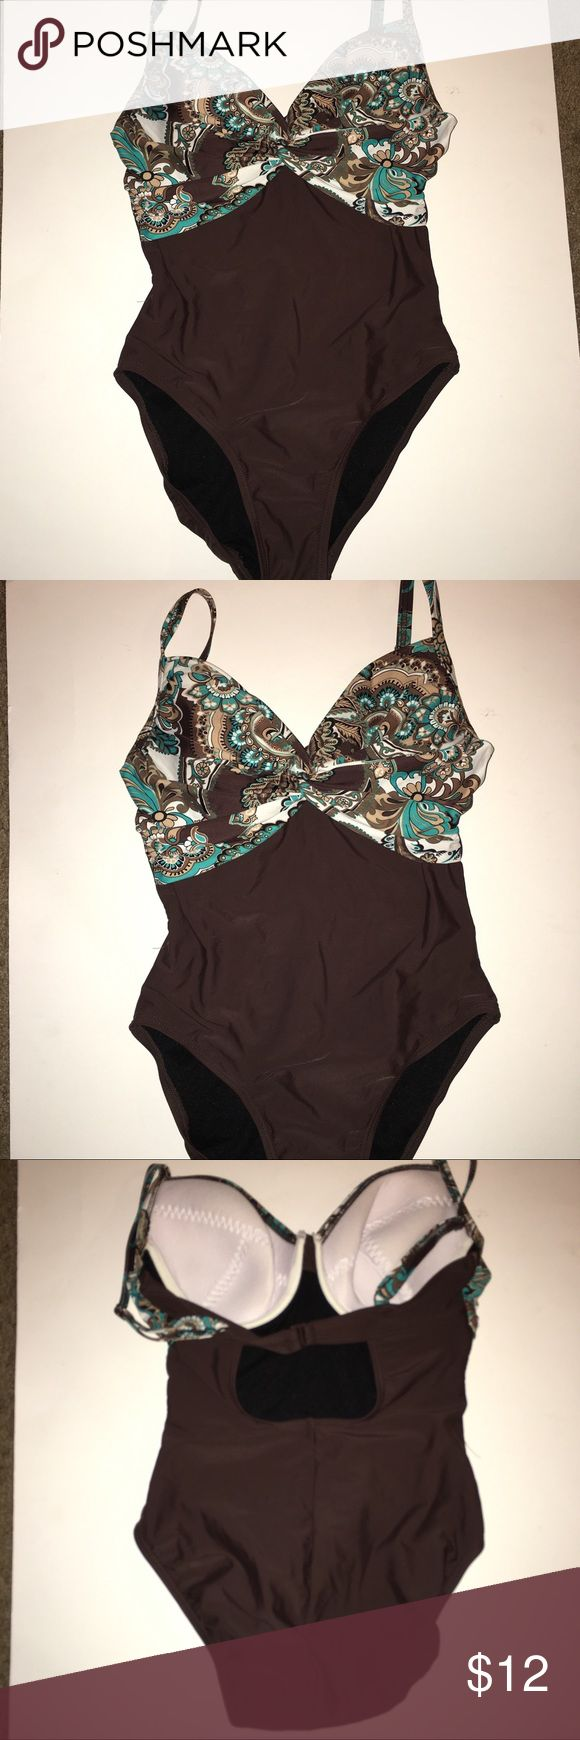 Sz 8 Boho Paisley Teal & Brown One Piece Boho Paisley Teal & Brown One Piece Swimsuit with built in bra. Great condition. No marks or tears! Swim One Pieces